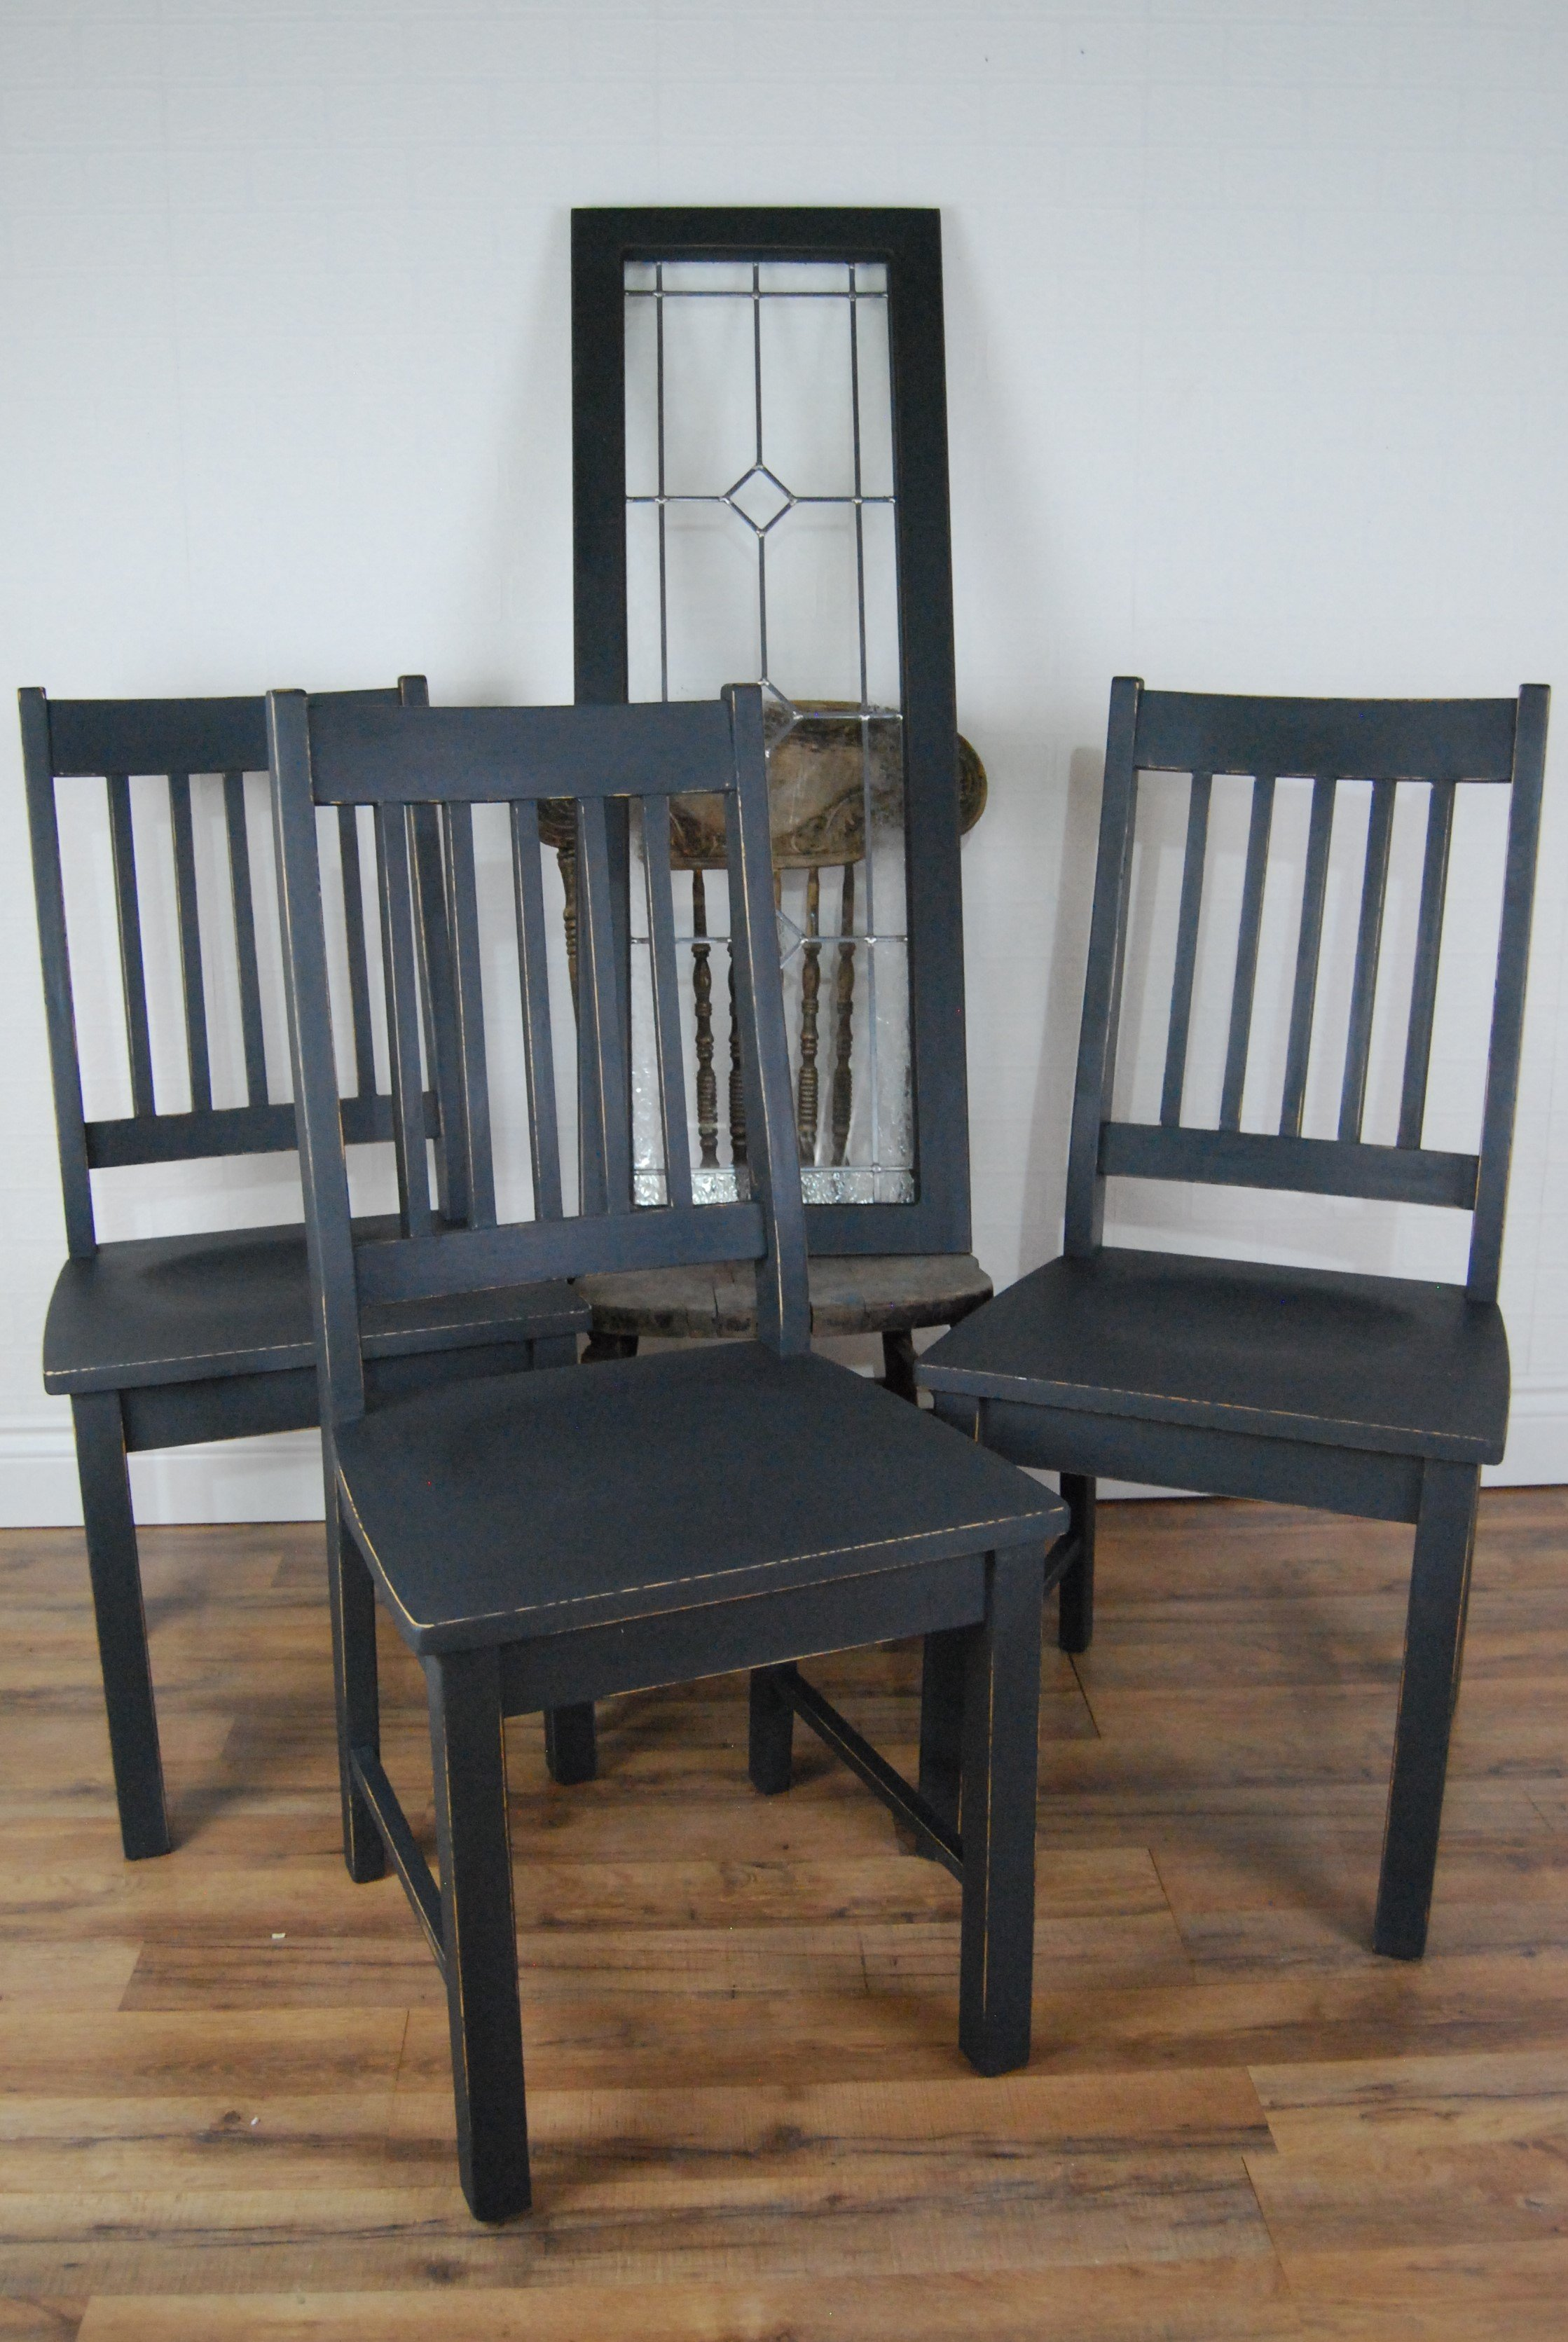 Annie Sloan Chalk Paint Classic Graphite Finish And The Pros And Cons Of Sanding Before Waxing!